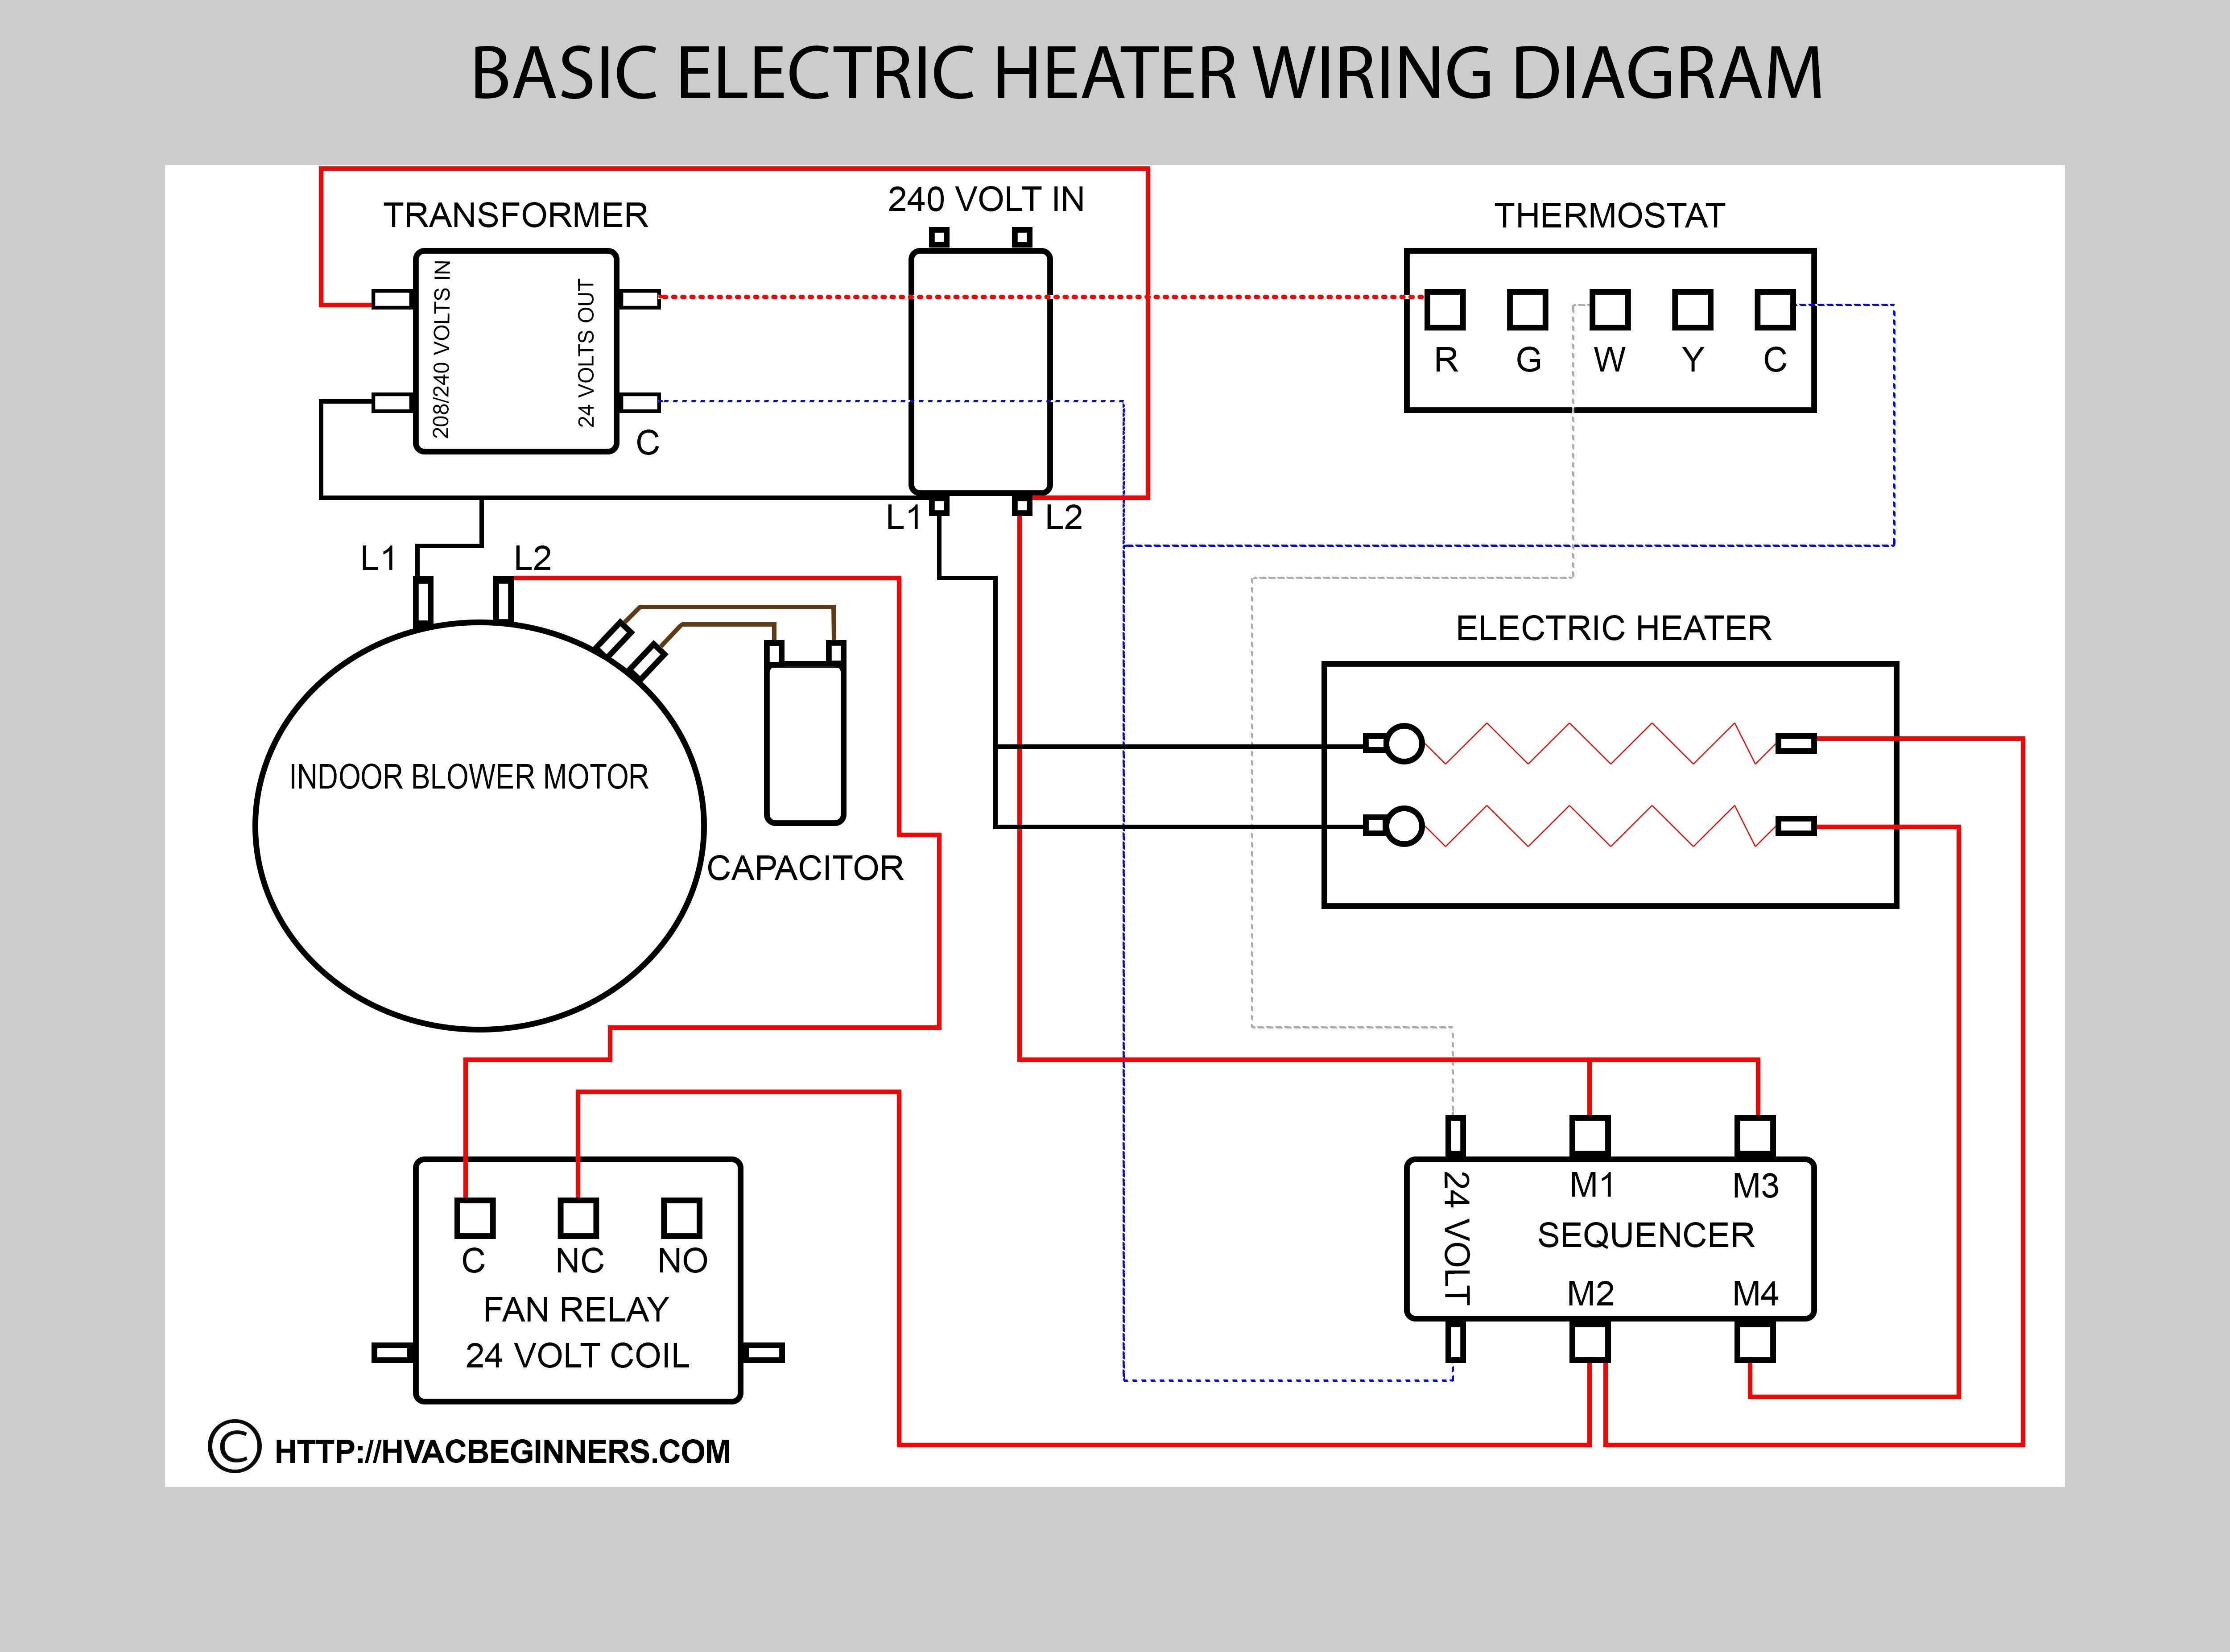 Lovely Y Plan Wiring Diagram Combi Boiler Diagrams Digramssample Diagramimages Electrical Circuit Diagram Electrical Wiring Diagram Diagram Design